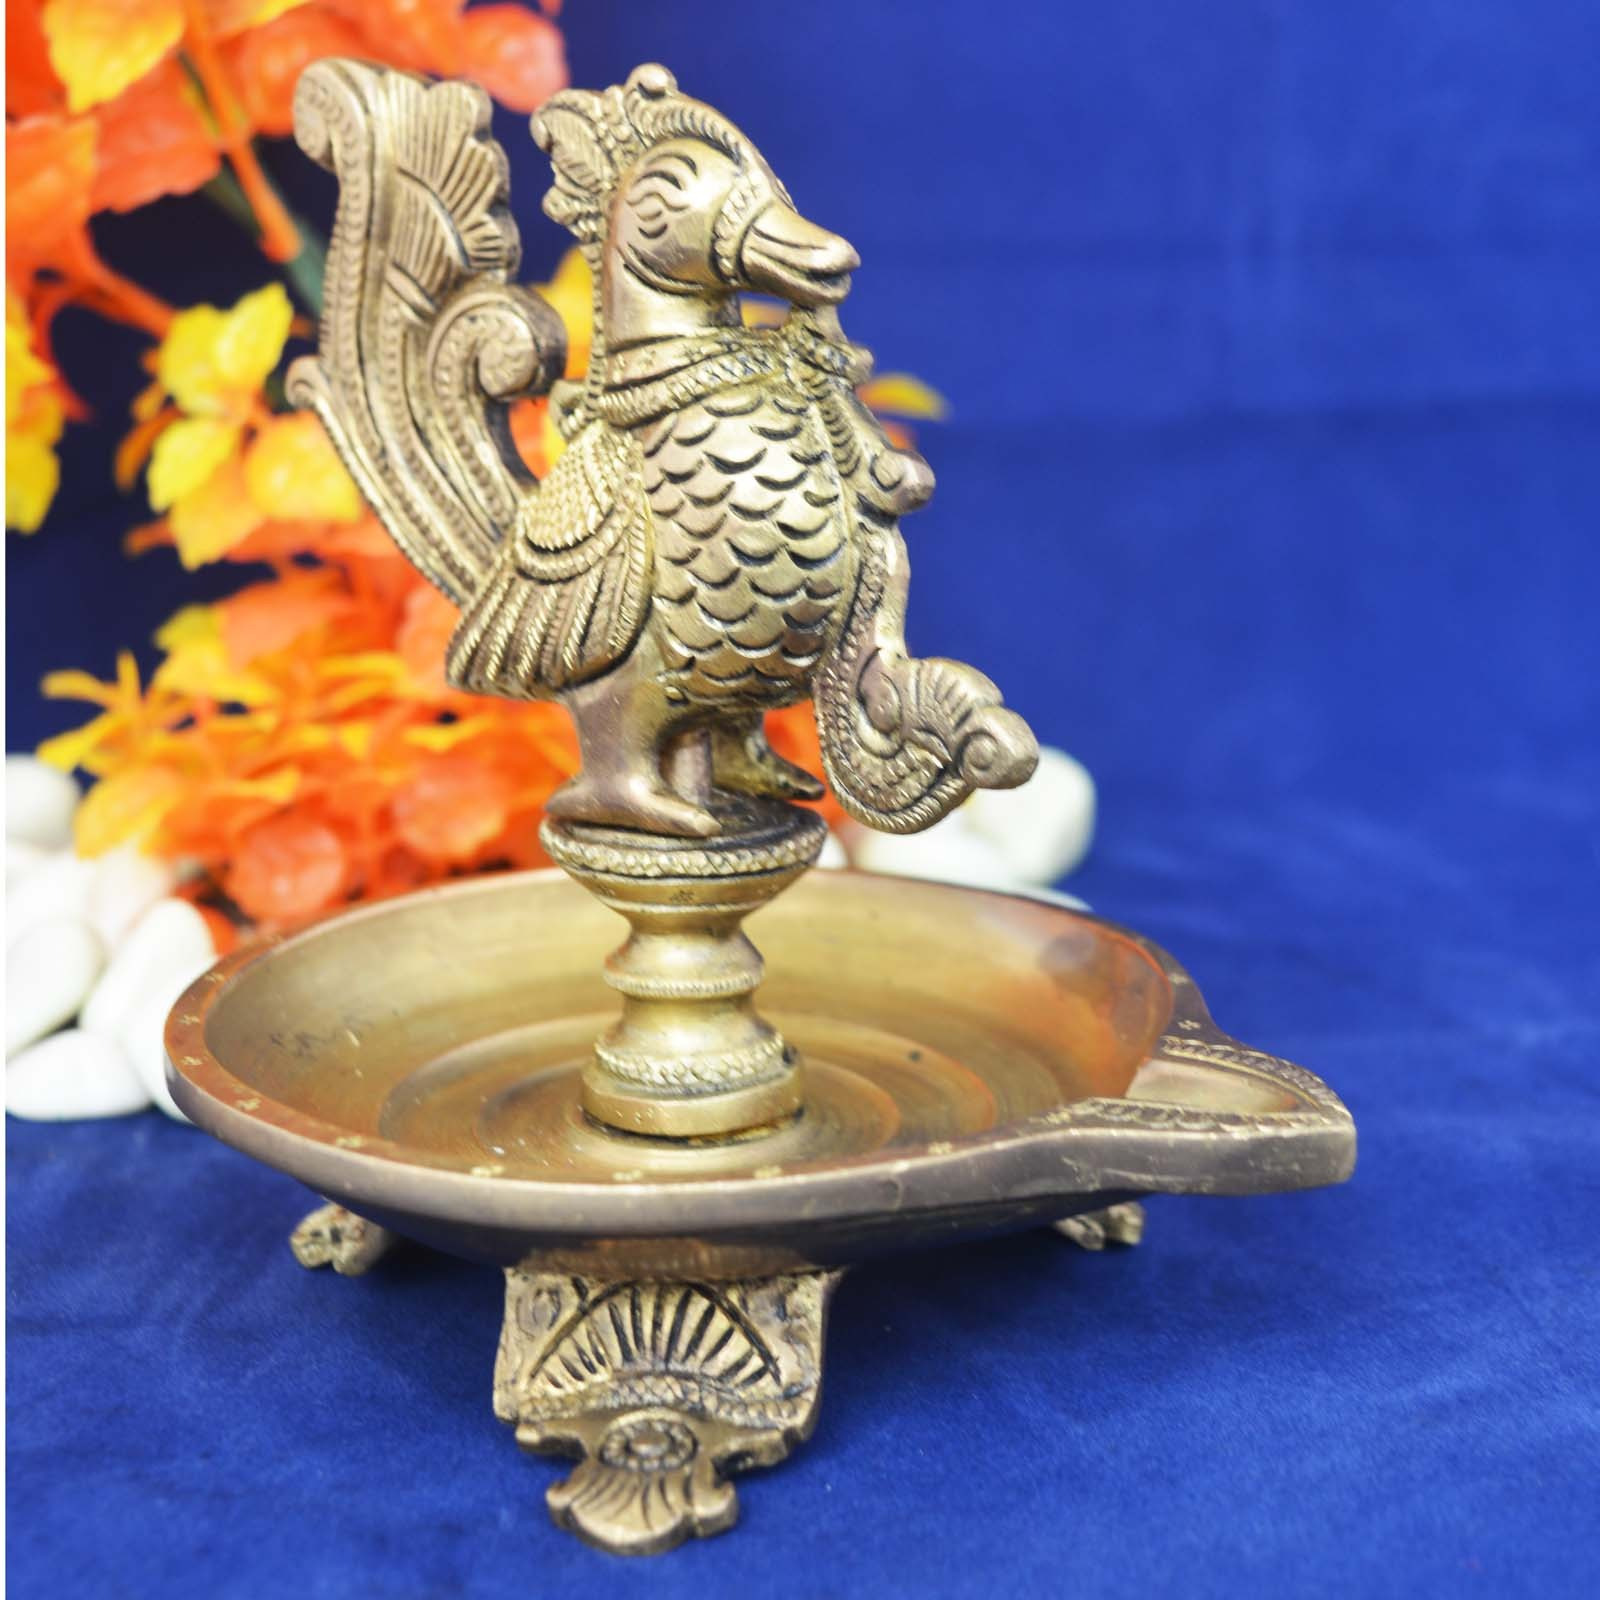 Aakrati Beautiful Bird Oil Lamp made of Brass with perfect finish and carvings for Home D??cor